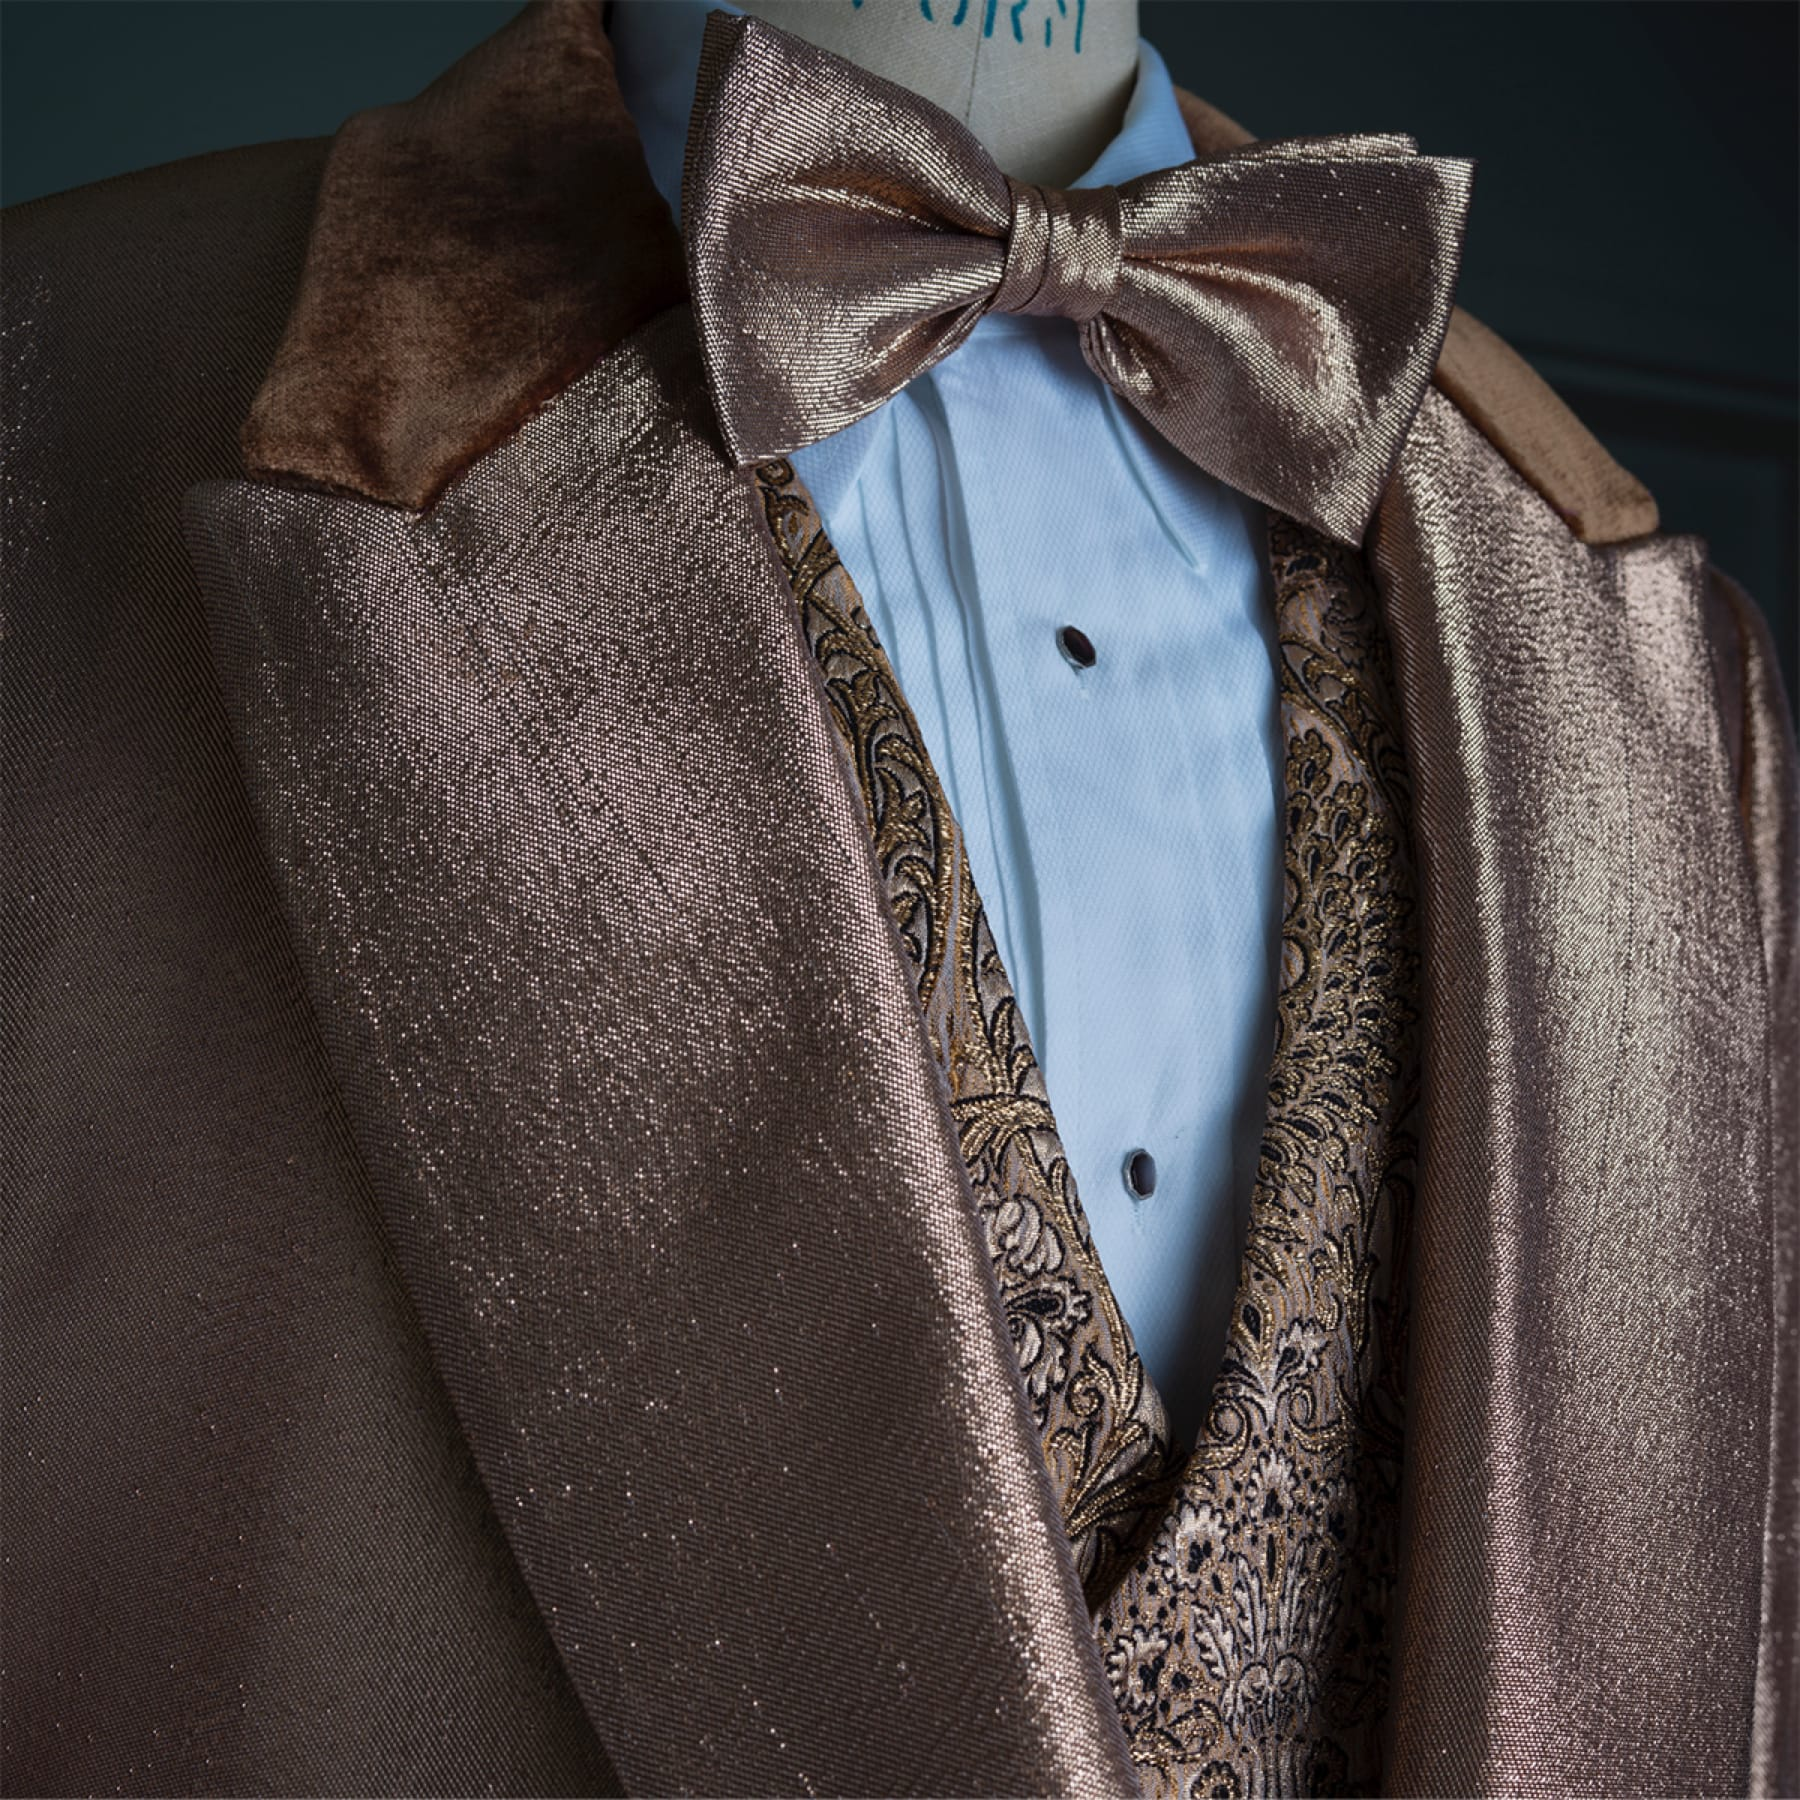 William Randolph Hearst's (Charles Dance) shiny, bronze suit and bowtie.